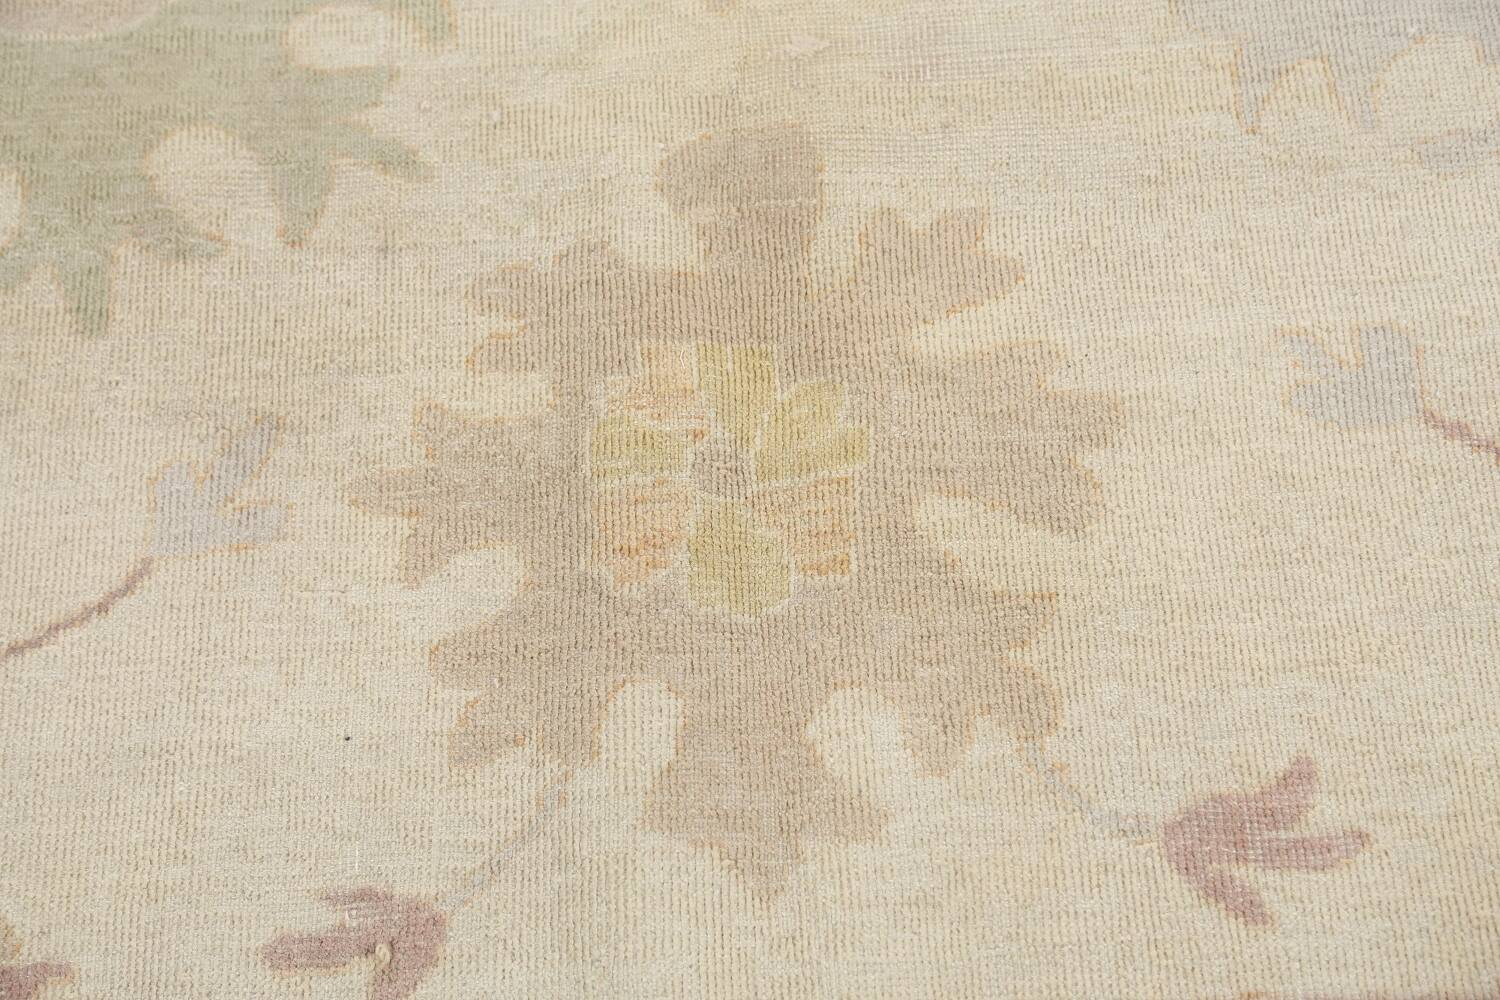 Muted Floral Oushak Egyptian Area Rug 8x9 image 9